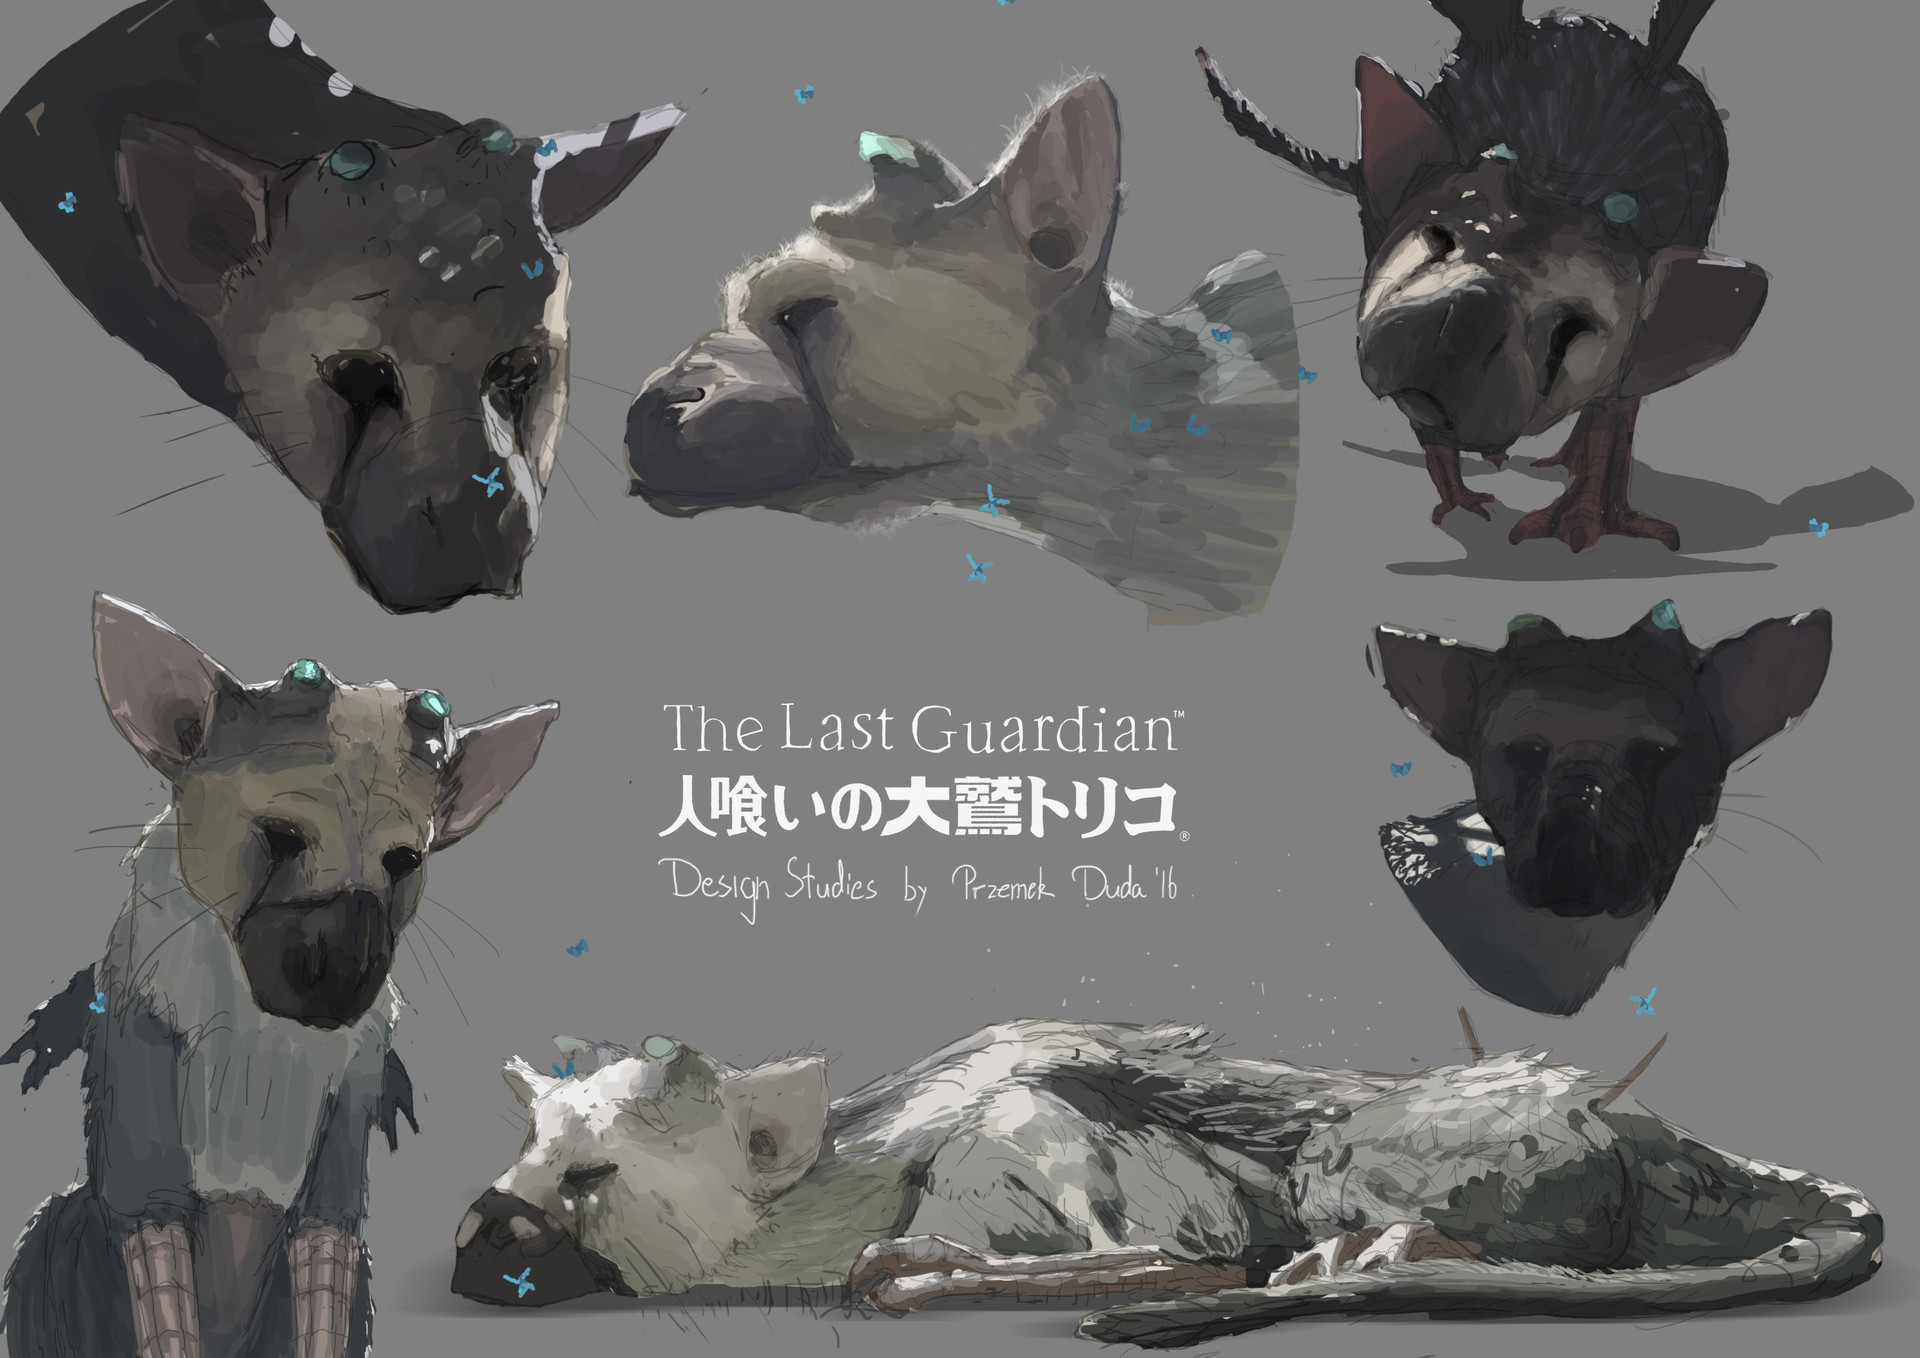 The Last Guardian Review: Beauty Art Need No Validation